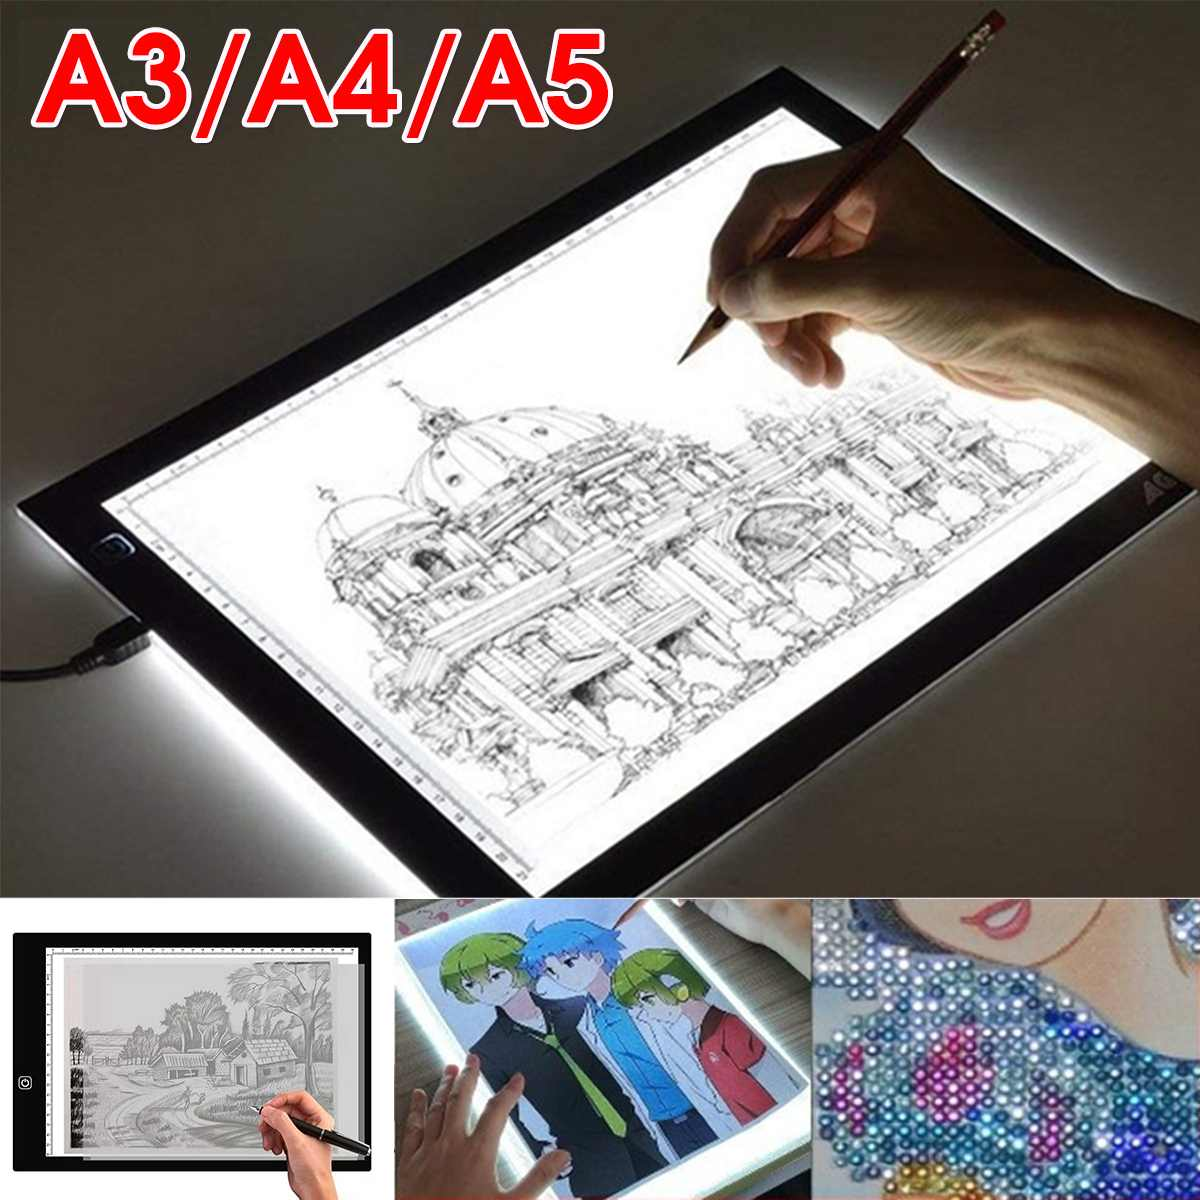 A3 A4 A5 Graphics Tablet LED Drawing Tablet Art Stencil Drawing Board Light Box Tracing Table Pad Electronics Writing Tablet